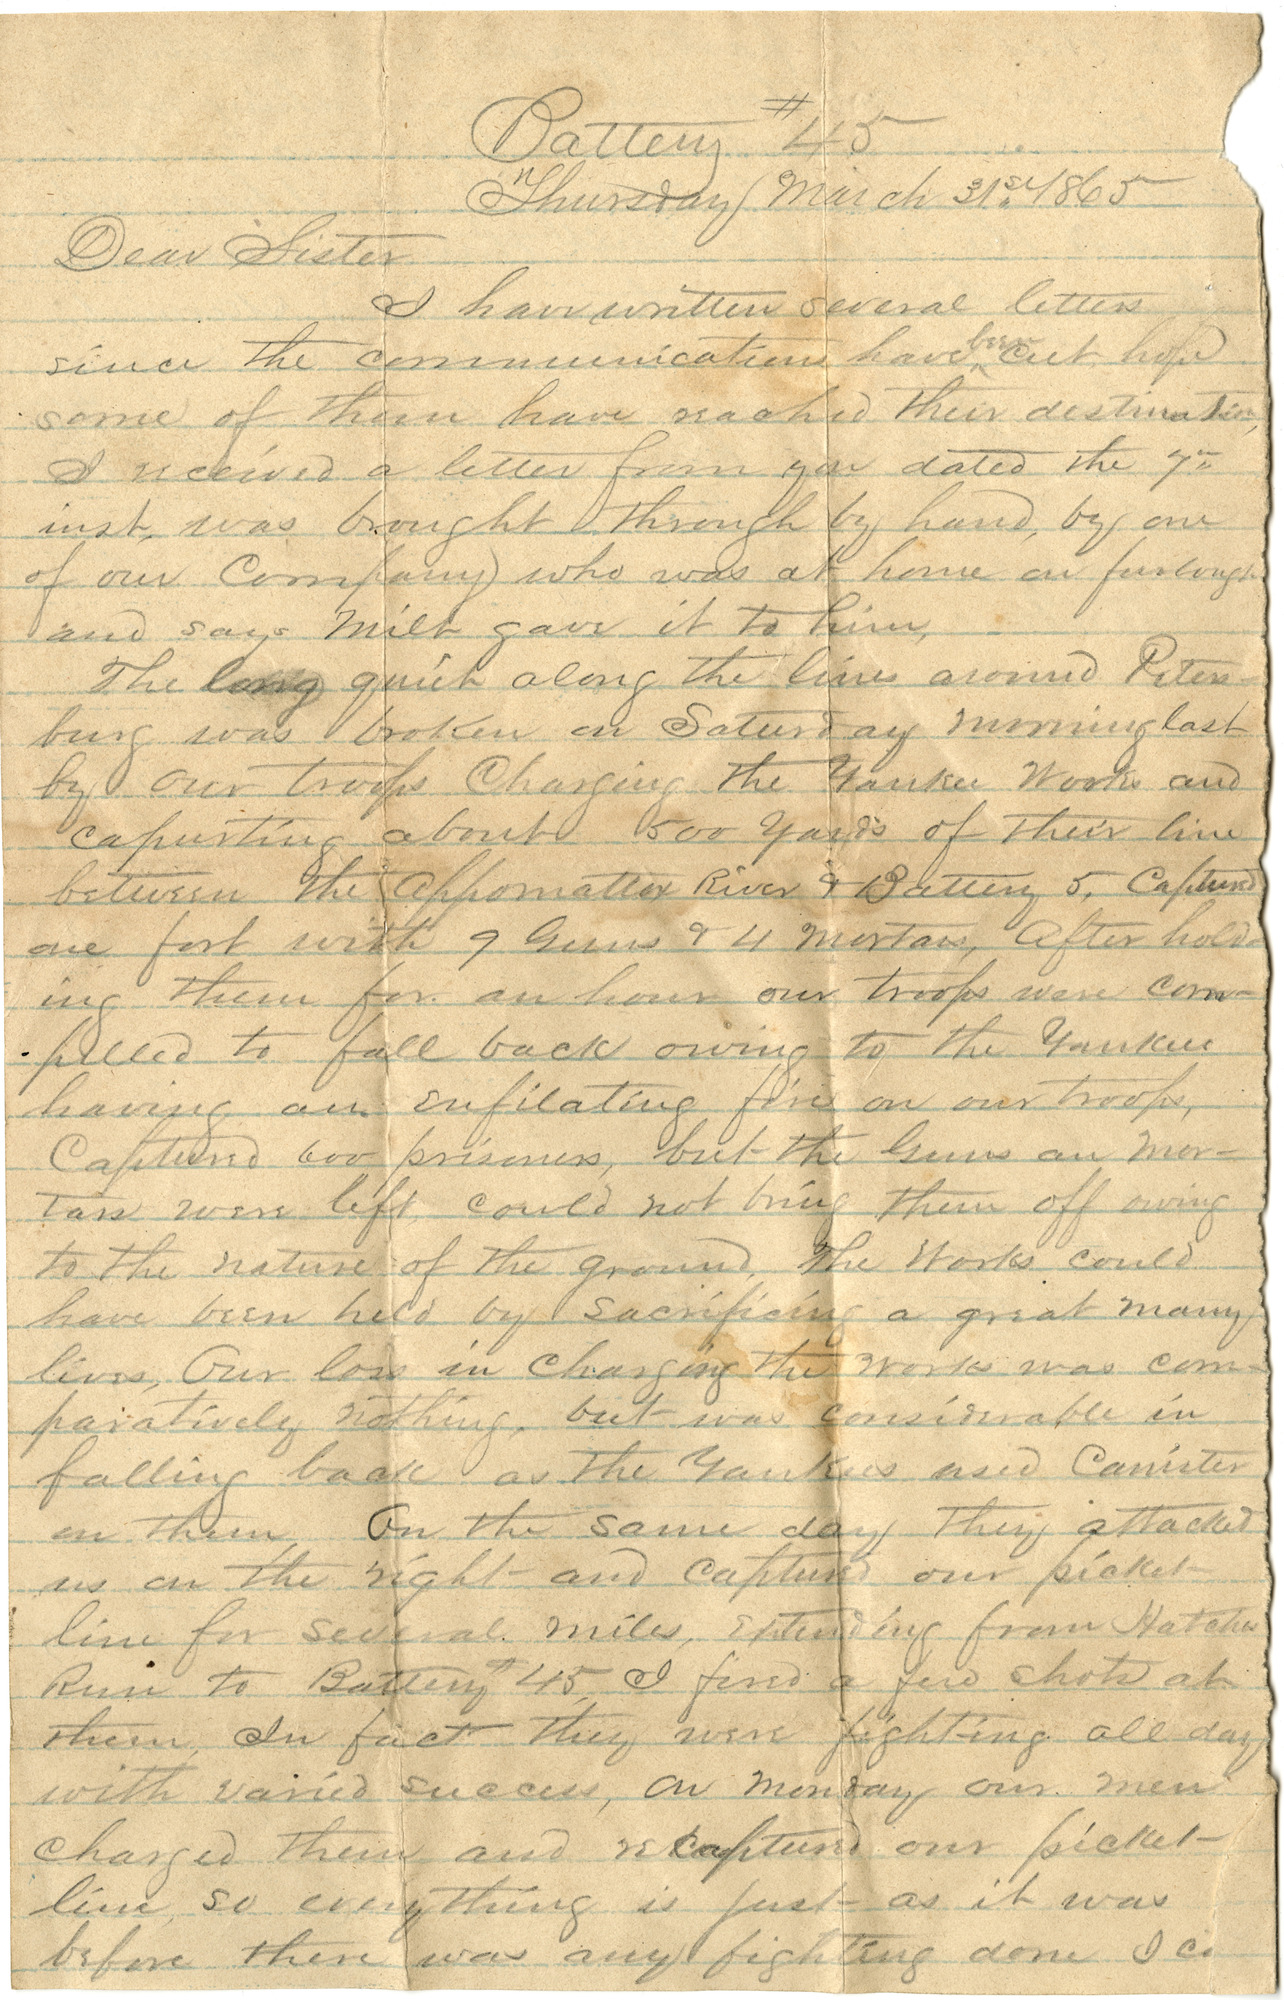 http://spec.lib.vt.edu/pickup/Omeka_upload/Ms1984-172_KoontzFamily_F1_Letter_1865_0331a.jpg